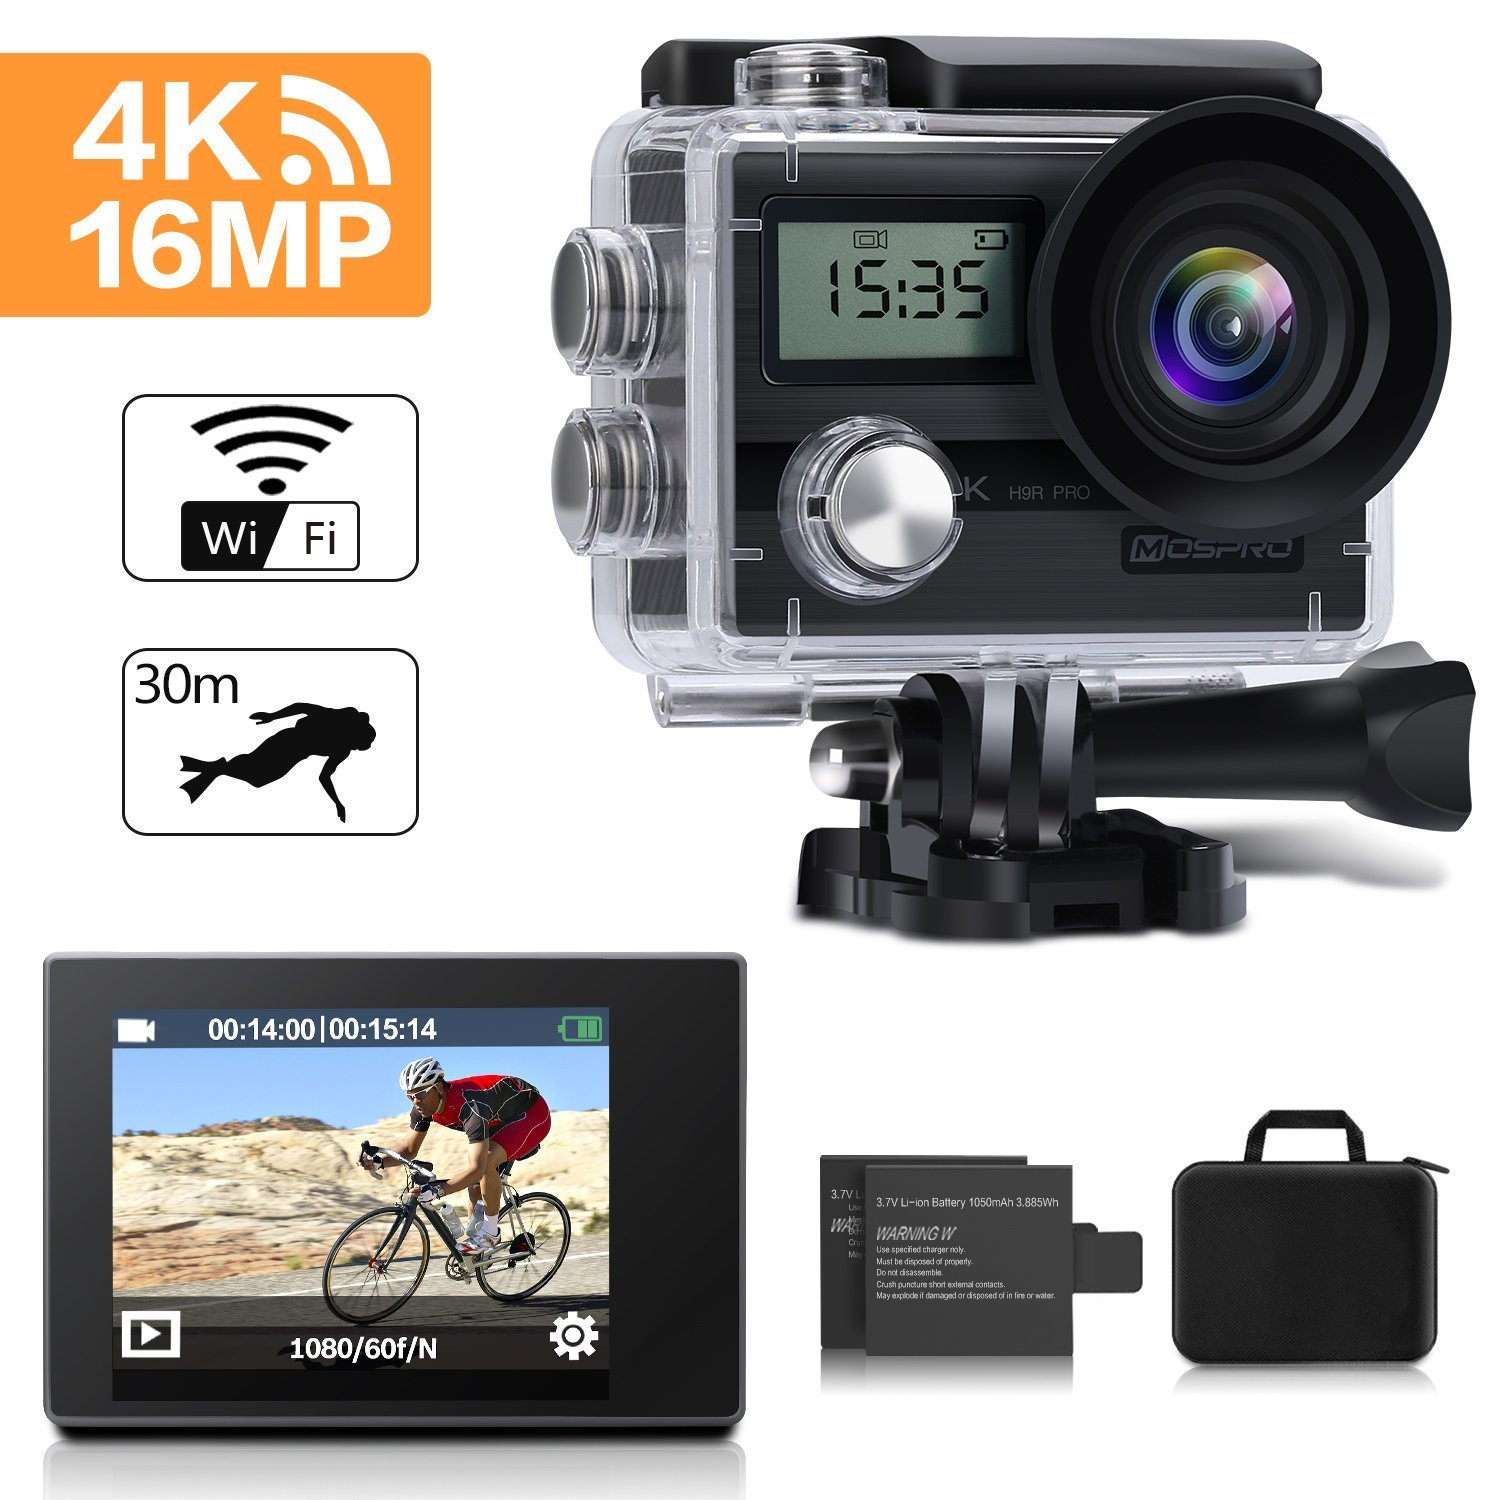 Action Camera, MOSPRO 4K 16MP Dual Screen WiFi Waterproof Sports Cam 170 Degree Wide Angle DV Camcorder 2 Rechargeable Batteries 19 Mounting Accessories Kit by MOSPRO